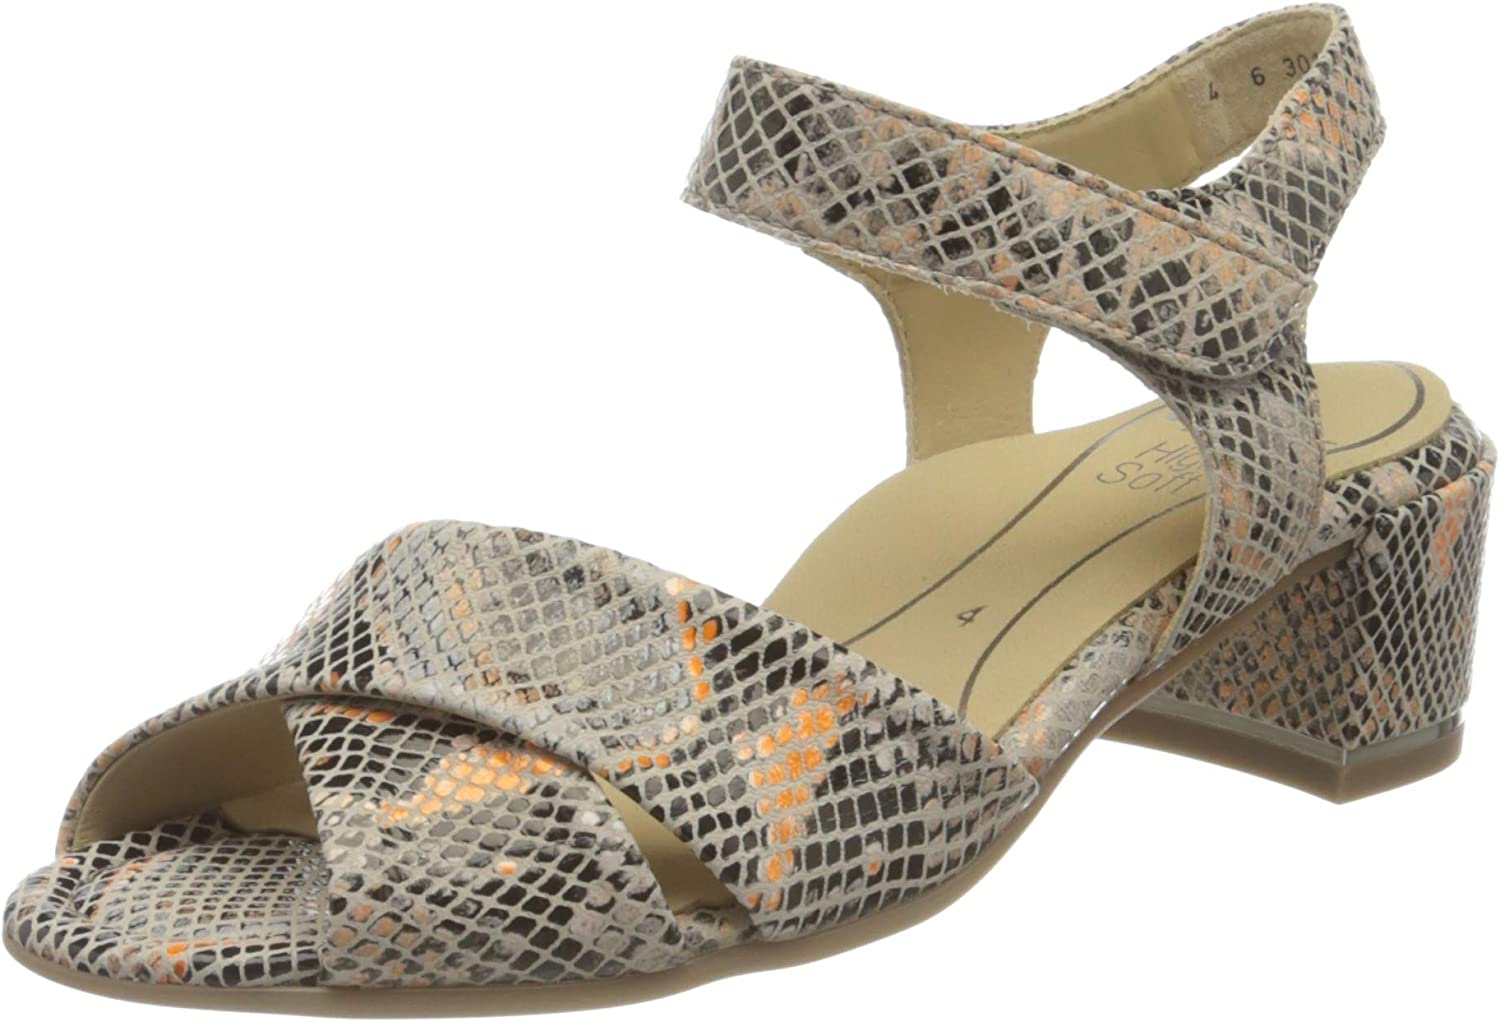 ARA Large special price Max 50% OFF Women's Ankle-Strap Sandal Heeled